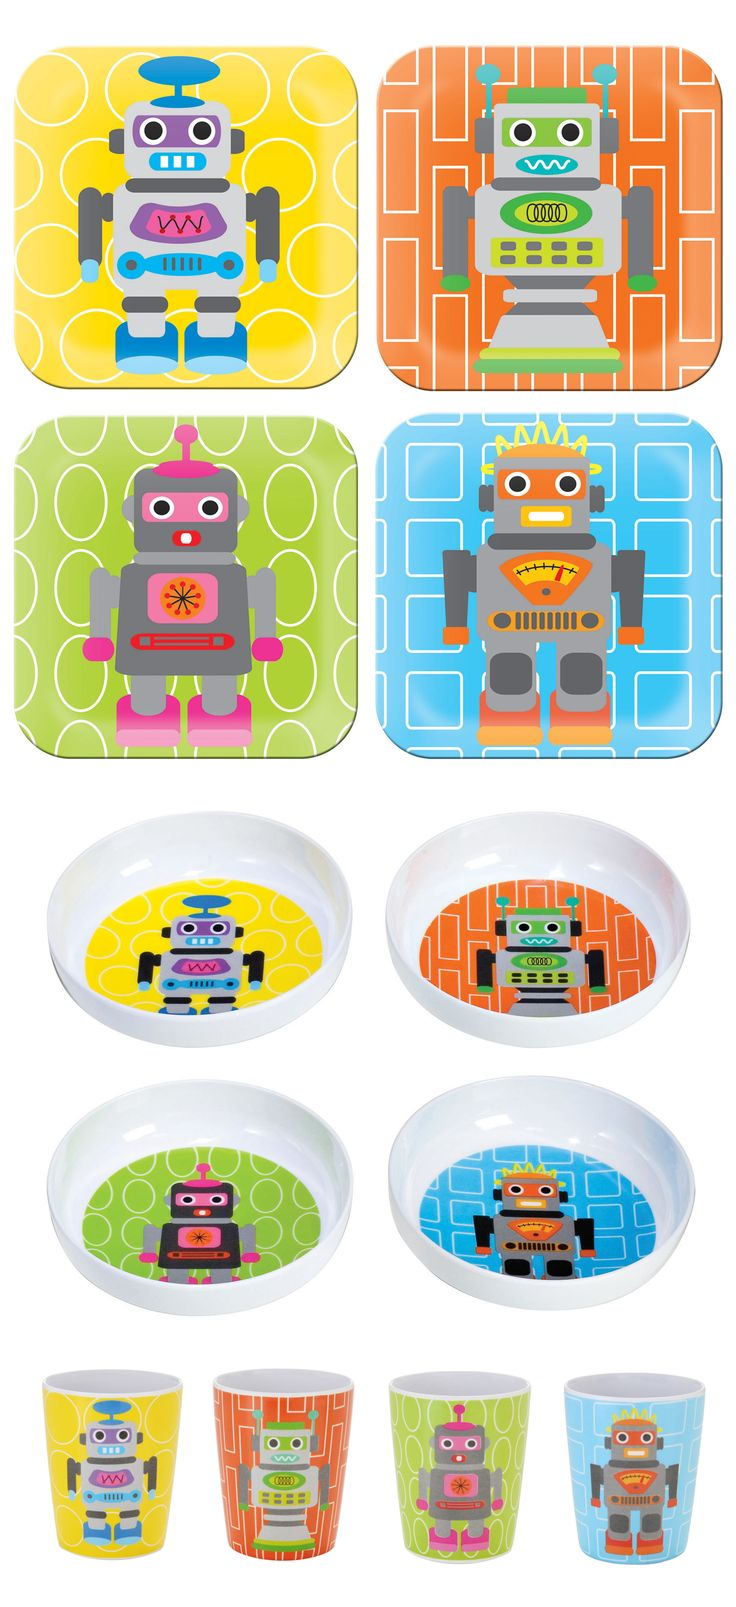 best kids images on pinterest  target sleepover and tray - french bull robot collection melamine kids plates kids bowls kids juicecups